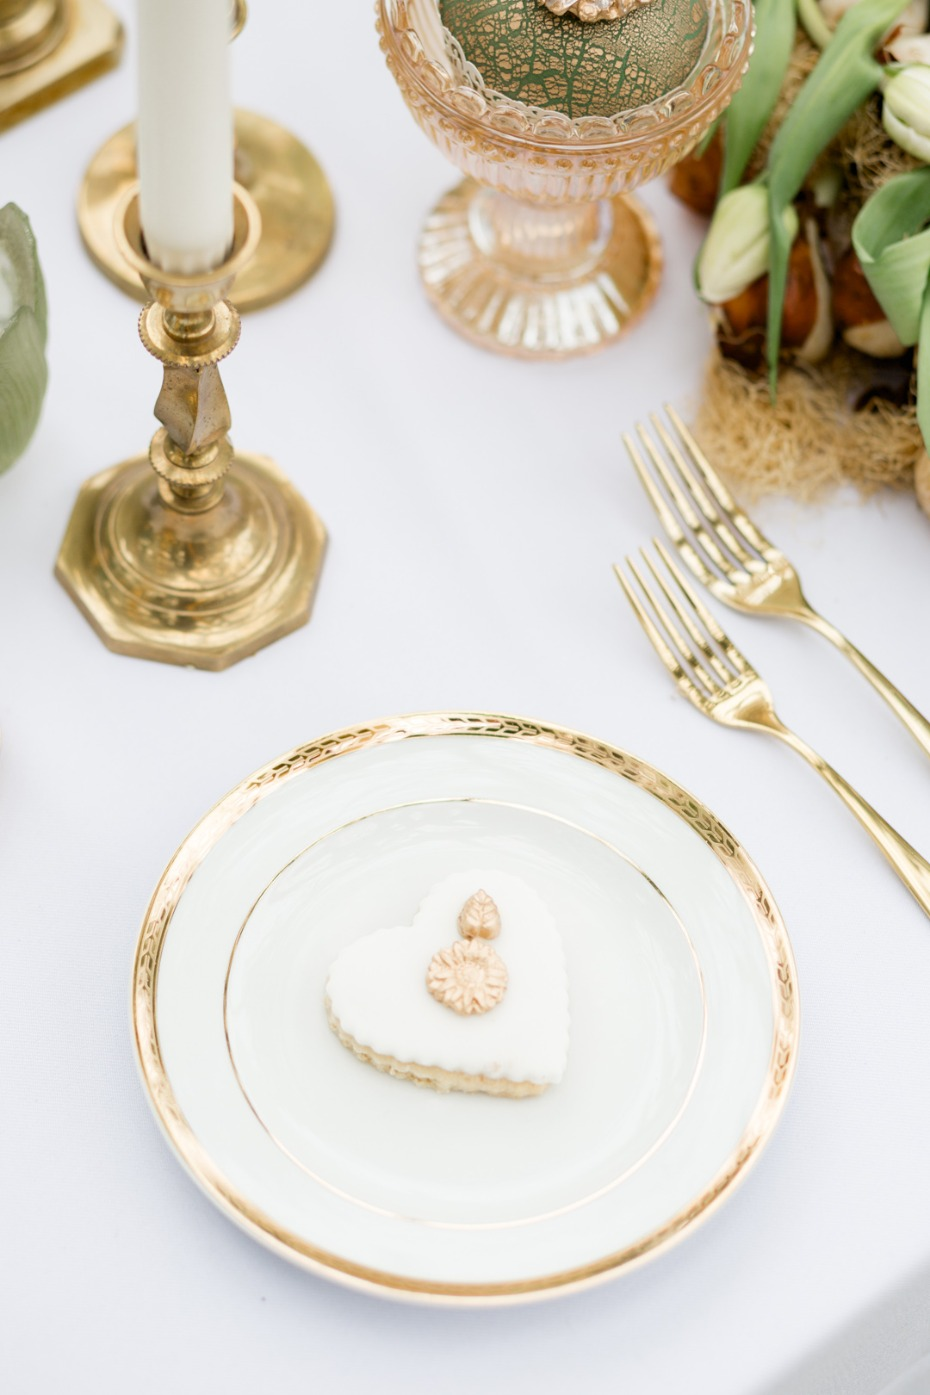 Gold-rimmed plates for a wedding